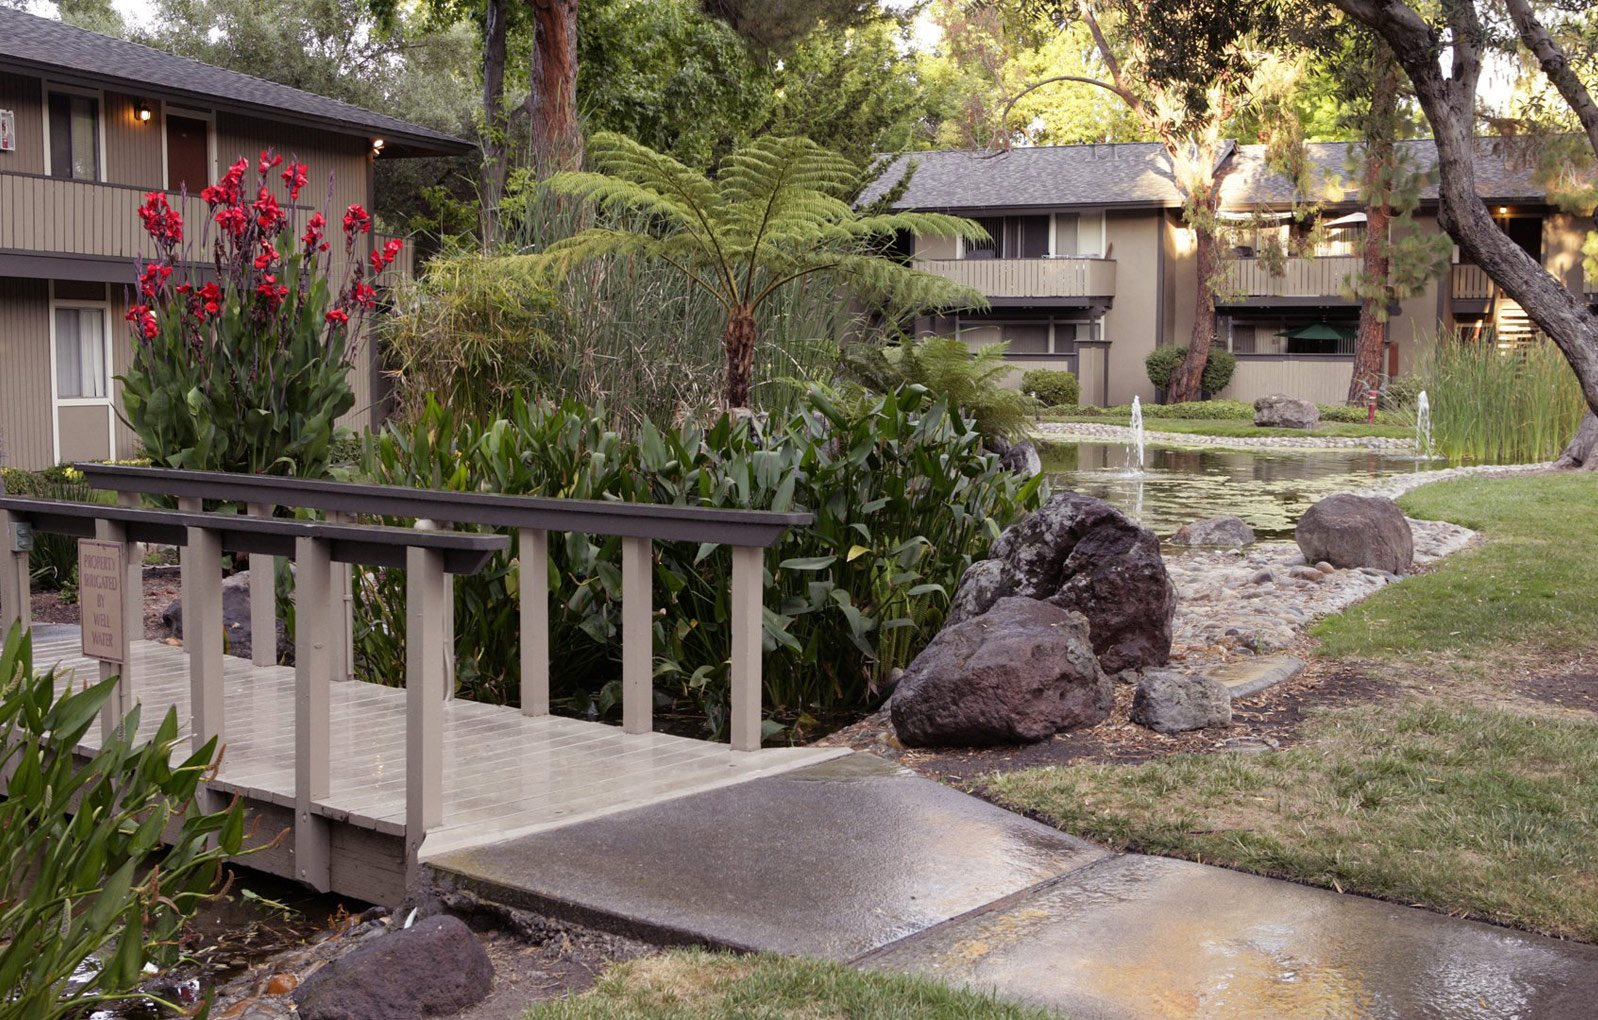 Lush landscaping with little bridge over community pond